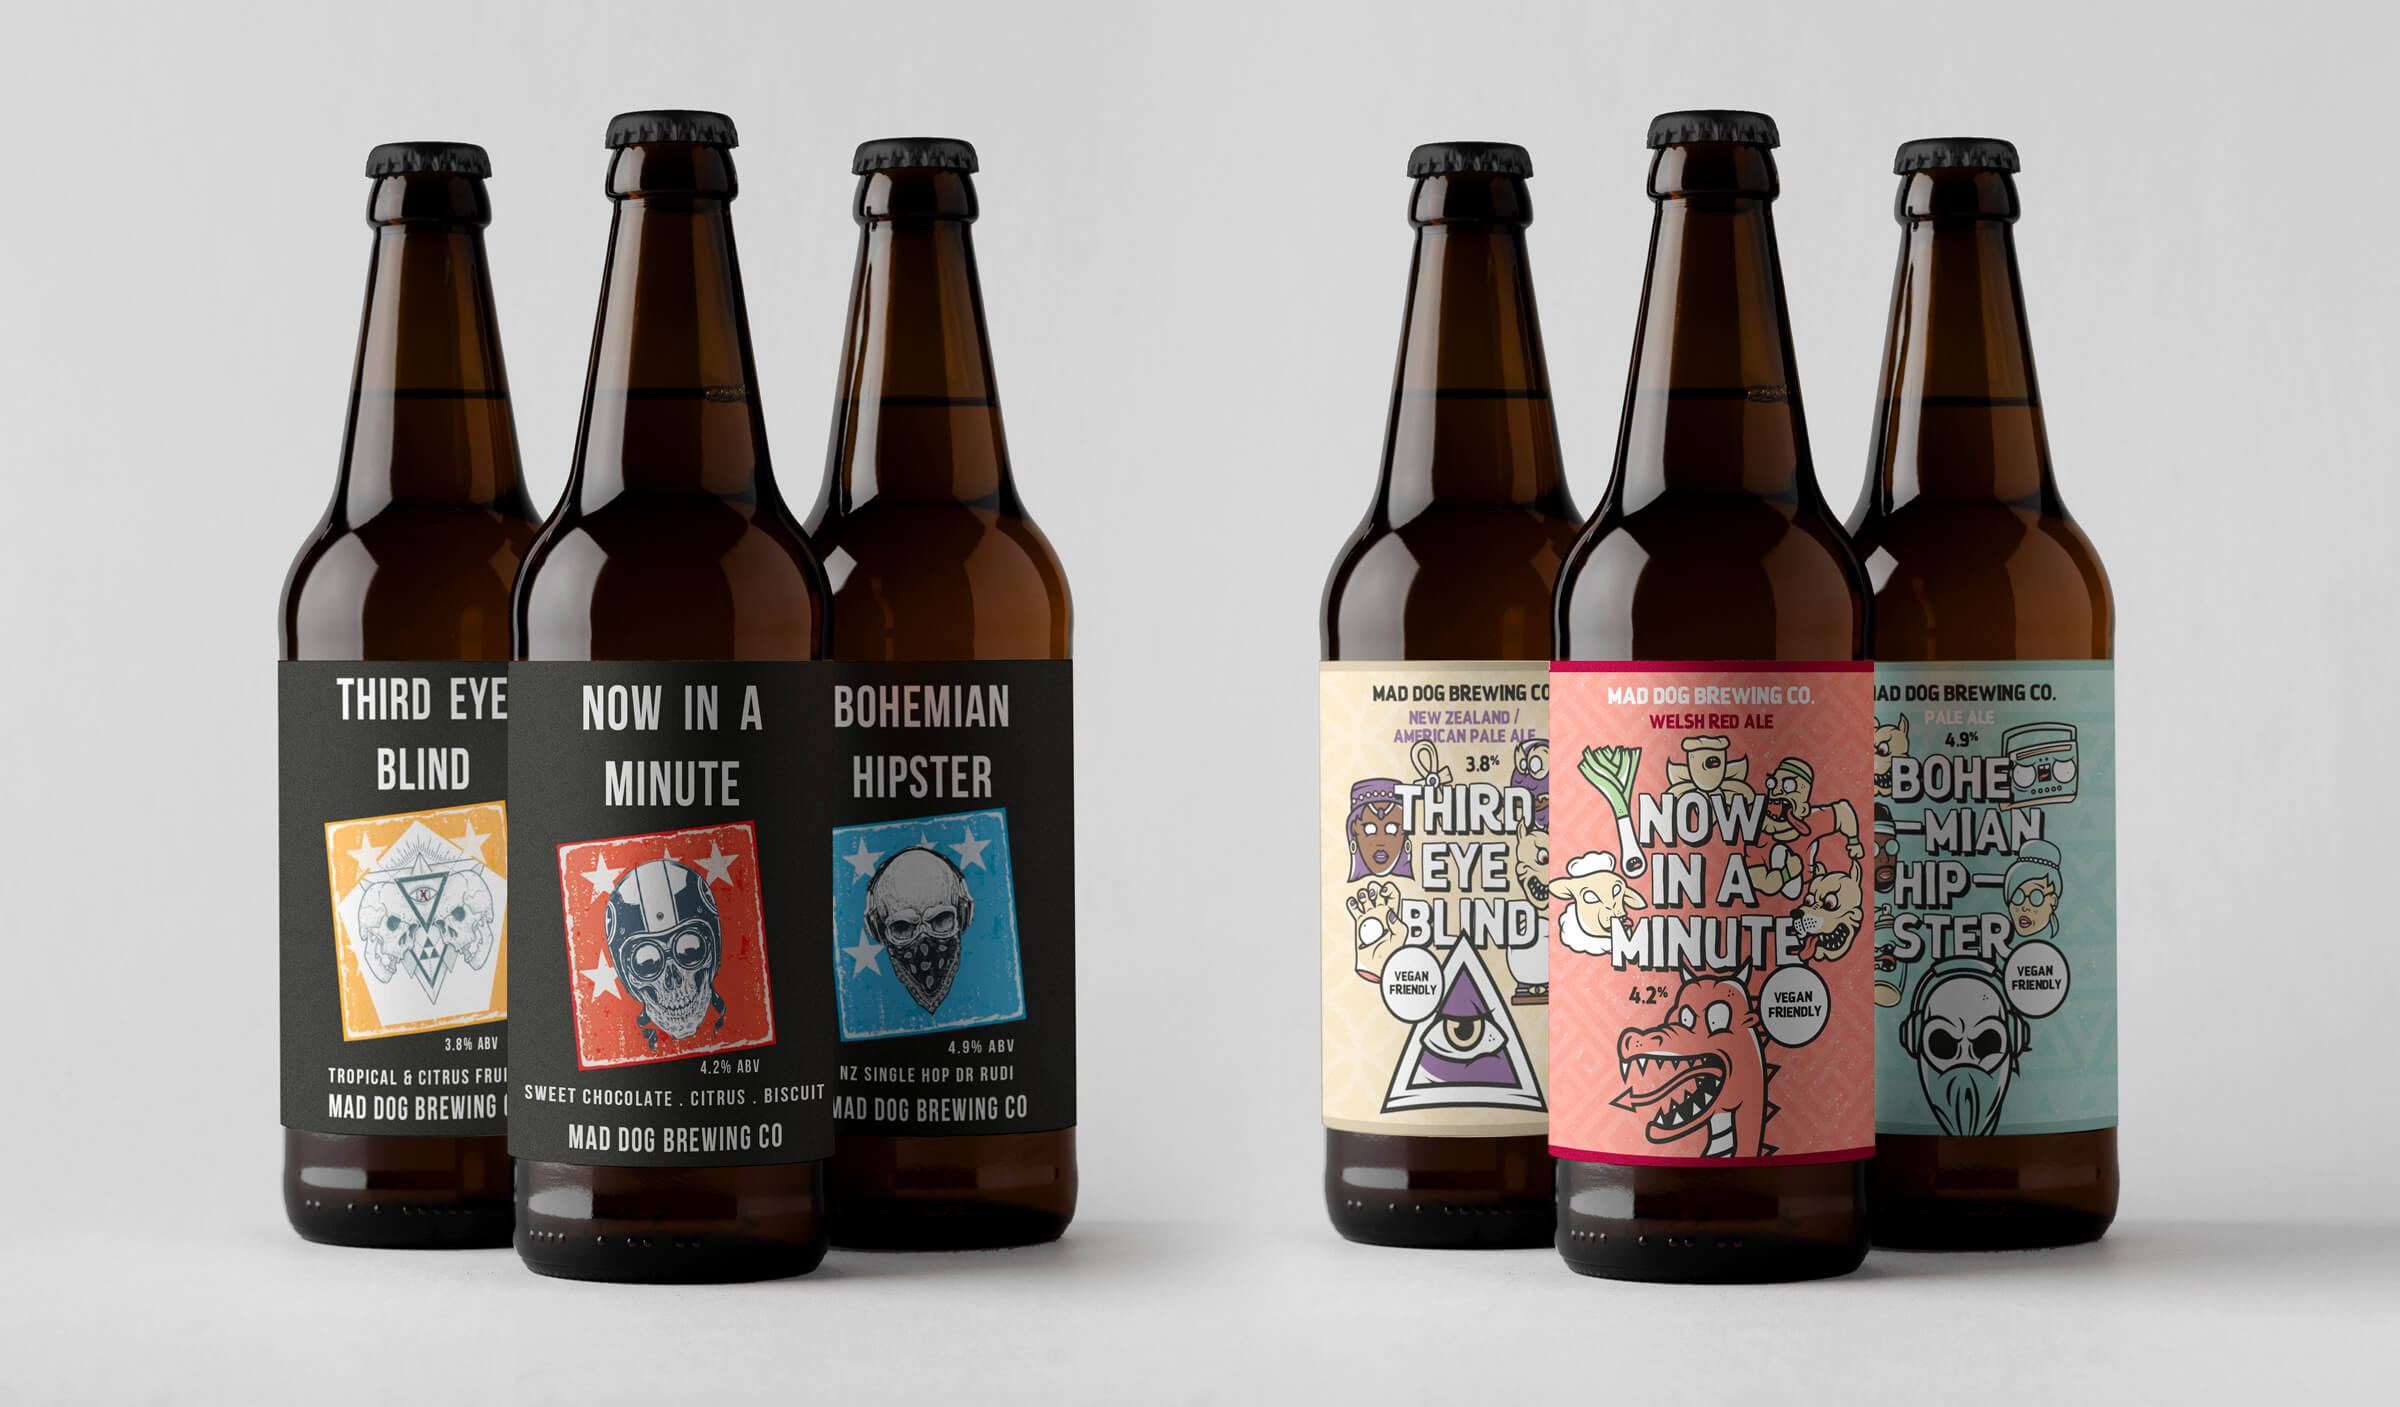 Mad Dog core beers packaging design before & after